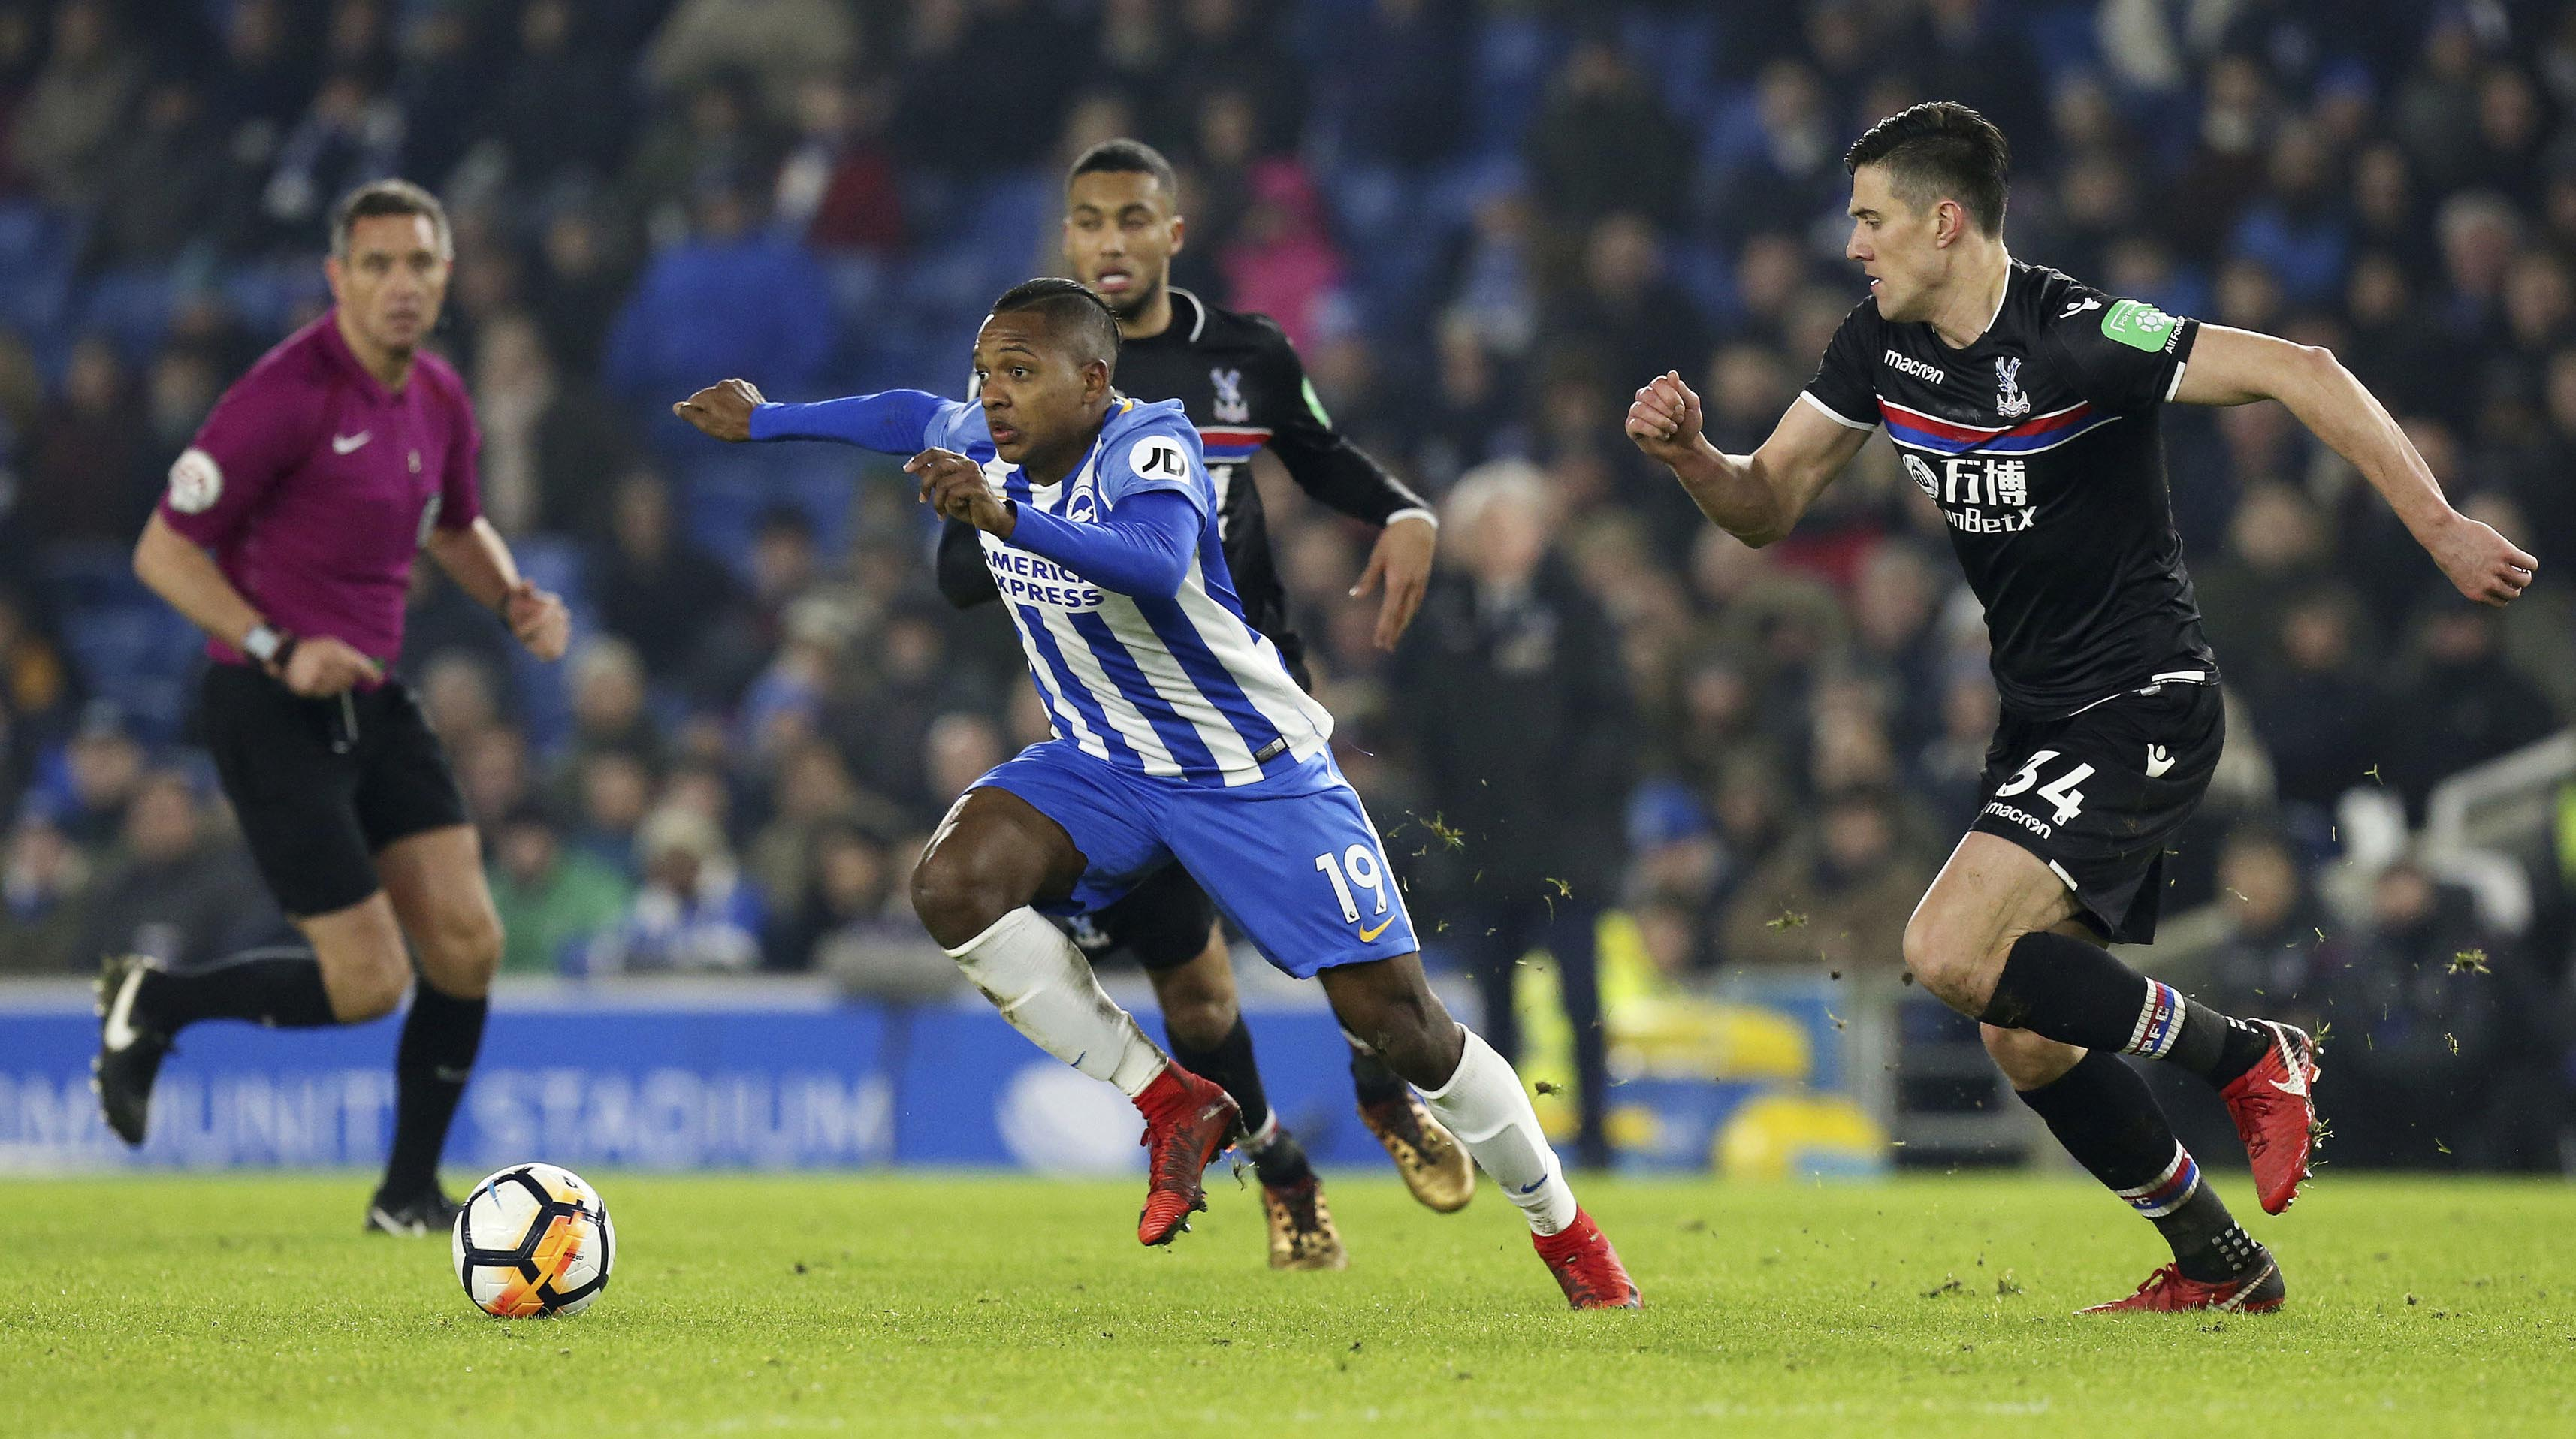 Brighton & Hove Albion's Jose Izquierdo breaks through Crystal Palace's Martin Kelly, right, and Jairo Riedewald, during their English FA Cup, Third Round soccer match at the AMEX Stadium in Brighton, England on Monday.